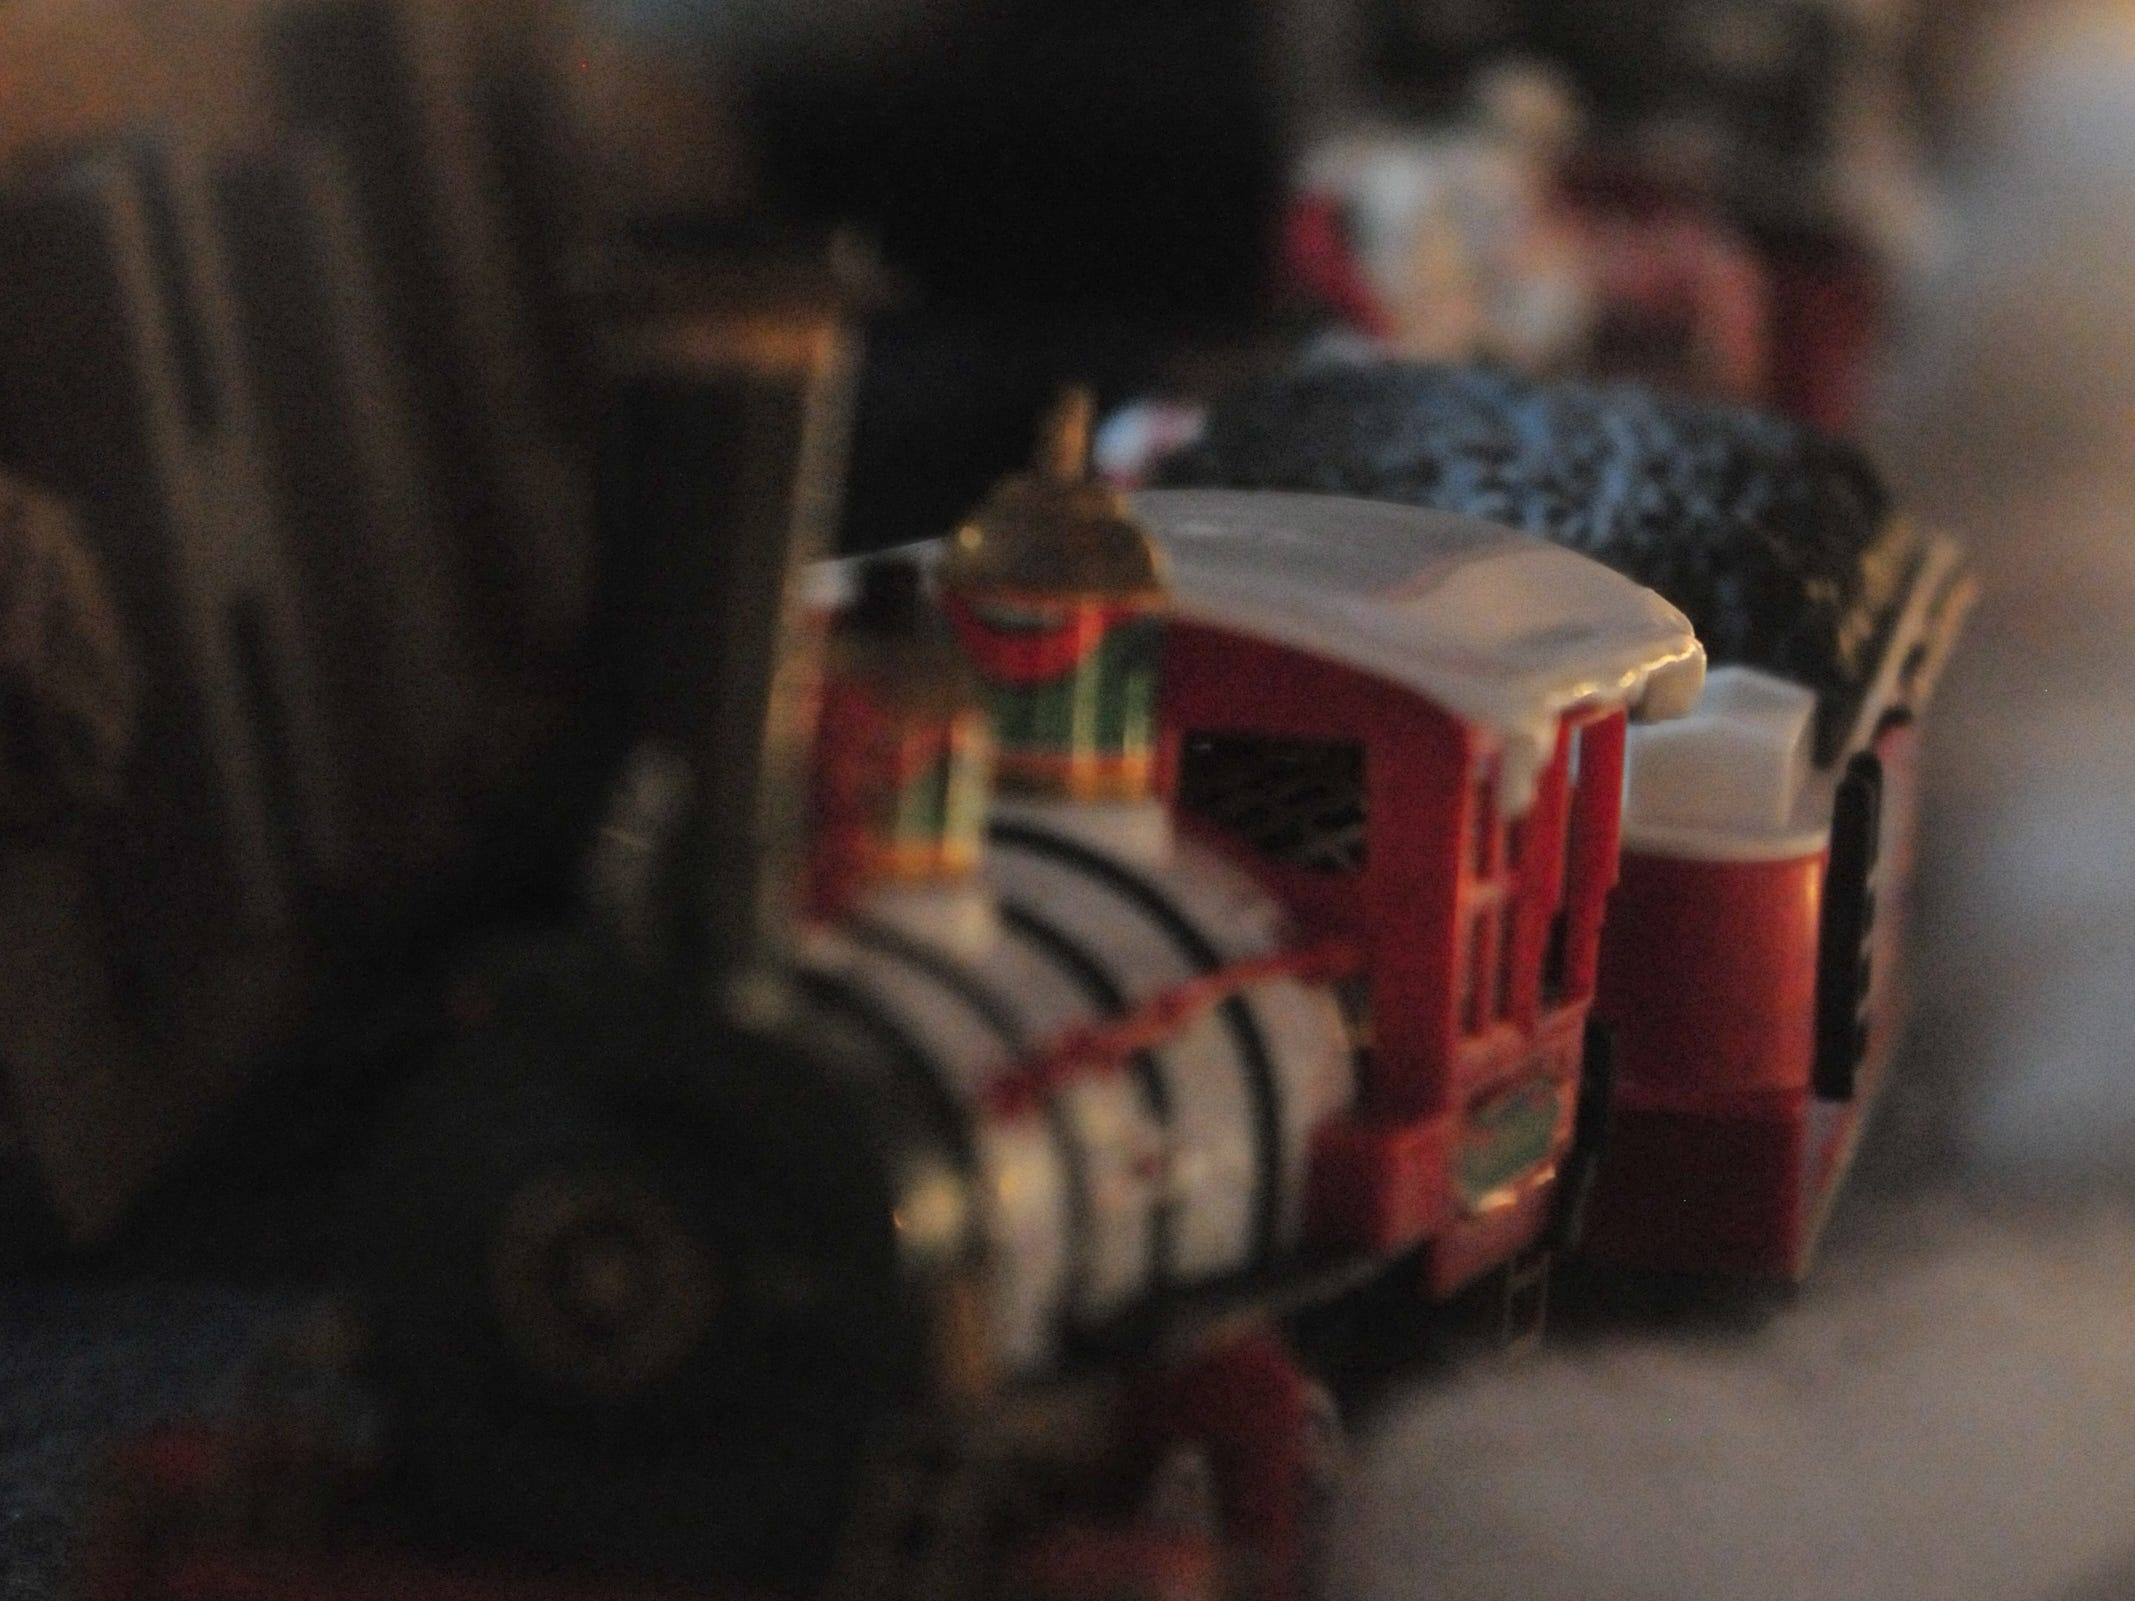 A train decorates a store window during Tuesday's 14th annual Old-Fashioned Christmas Festival.